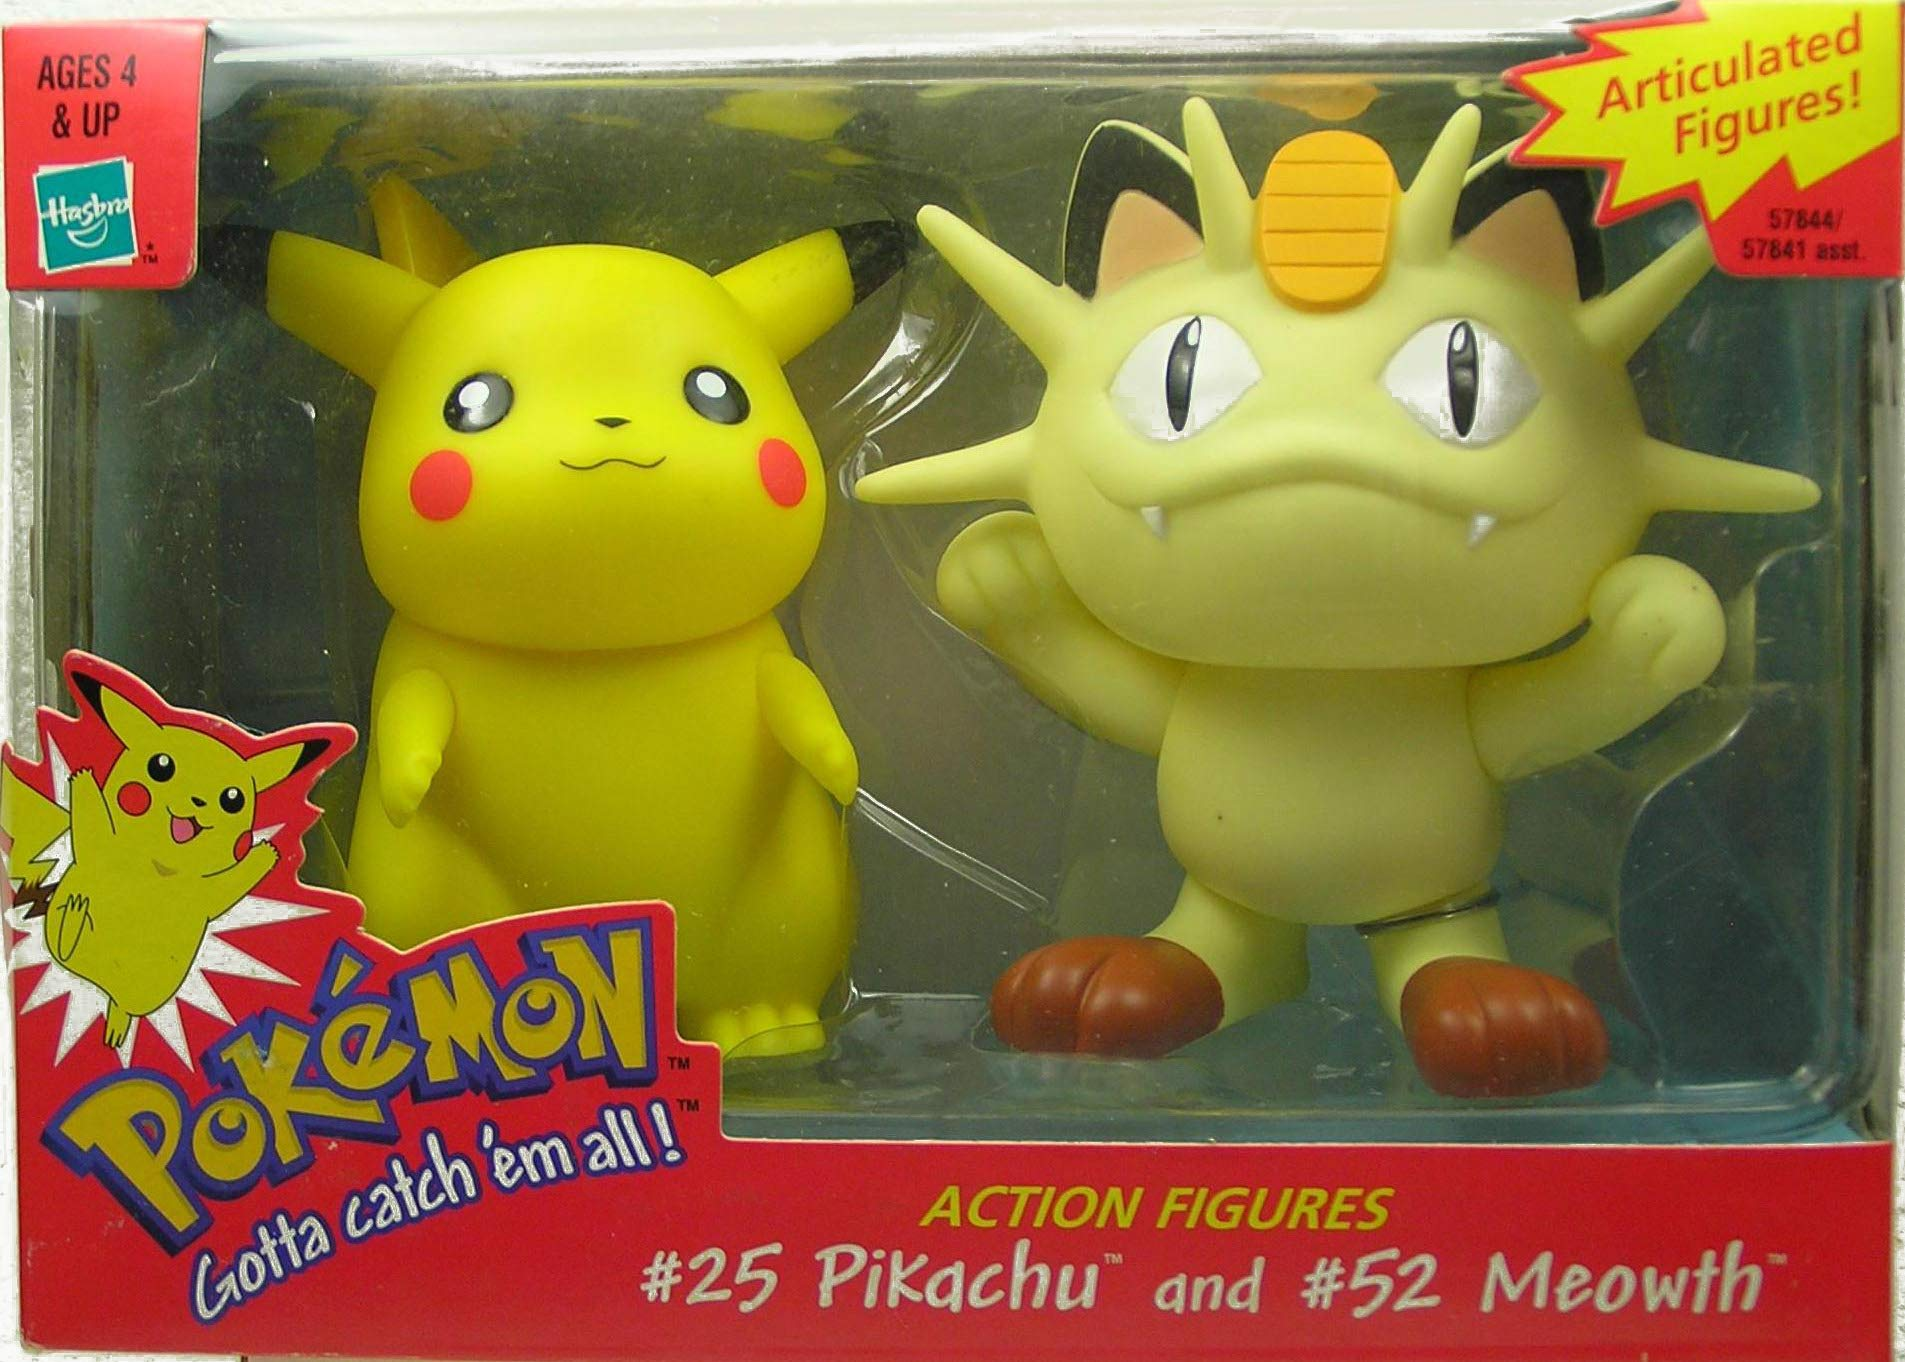 AFLOT2-TOY-PKCHMWTH-076930578445-N Pokemon Articulated Figures #25 Pikachu and #52 Meowth Action Figures